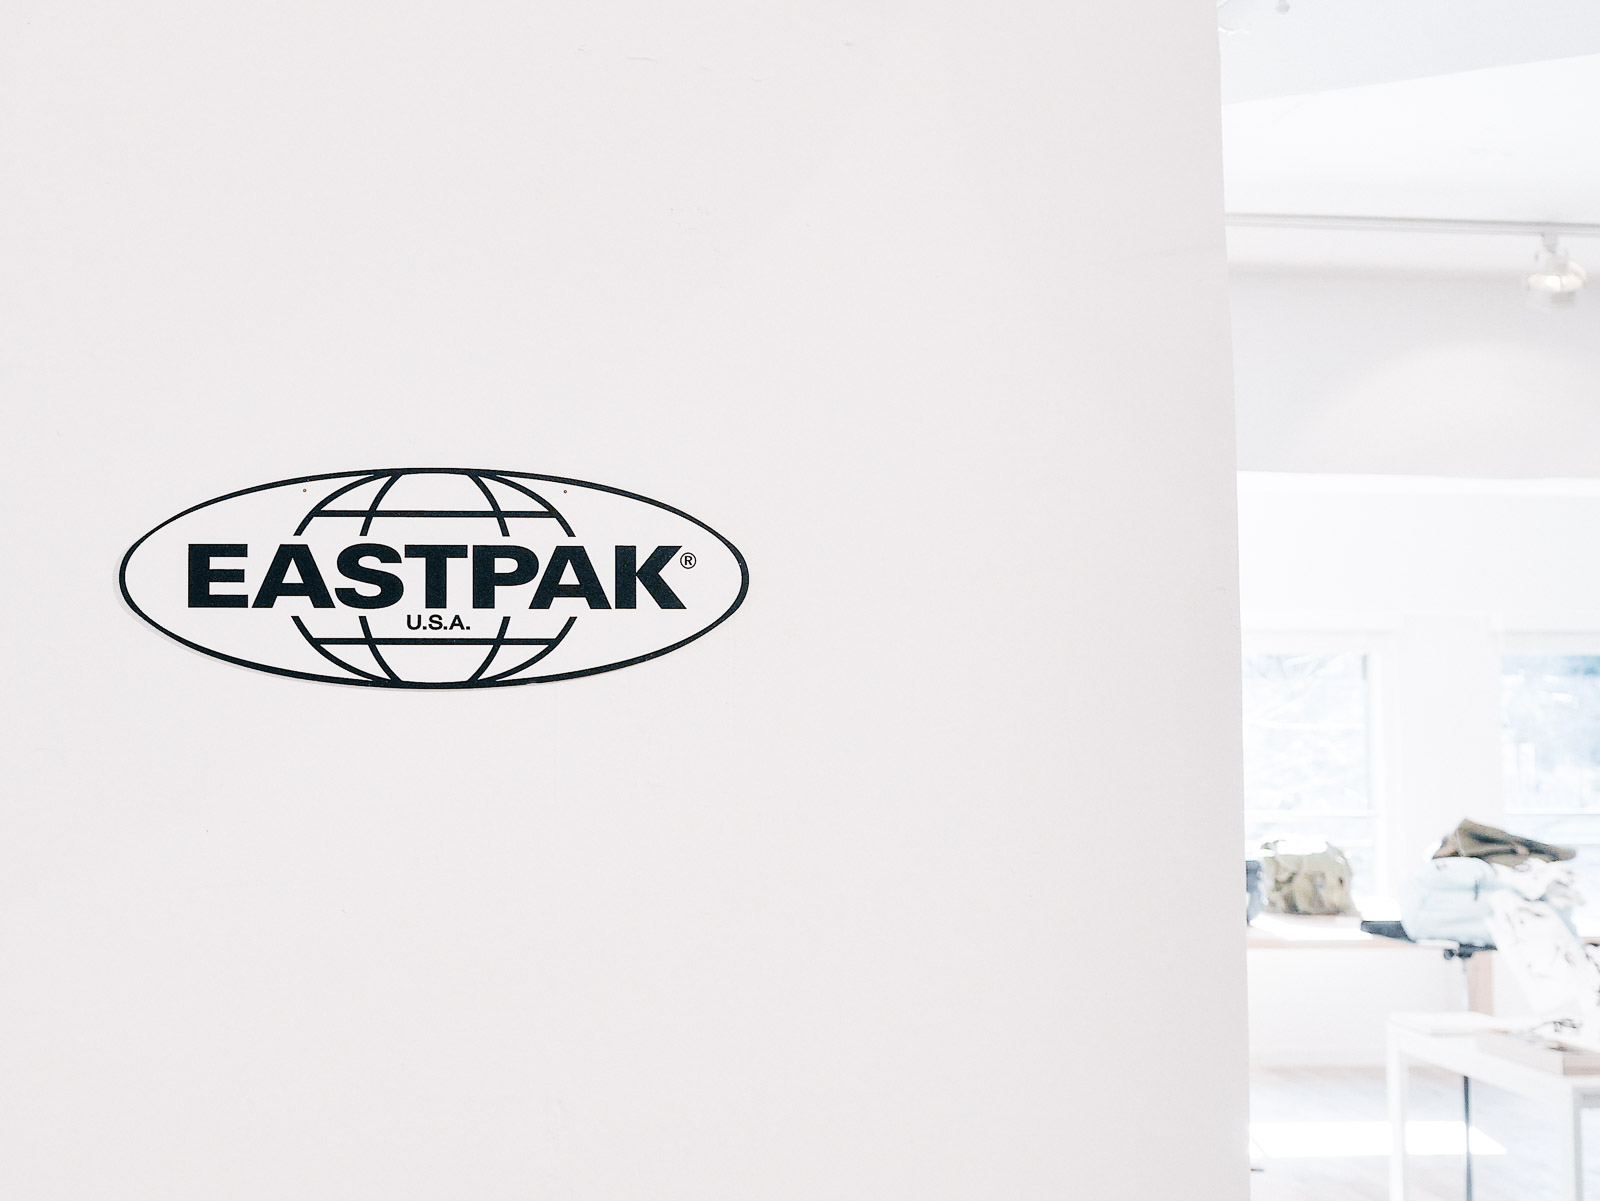 EASTPAK Exhibition – My Essentials in My EASTPAK